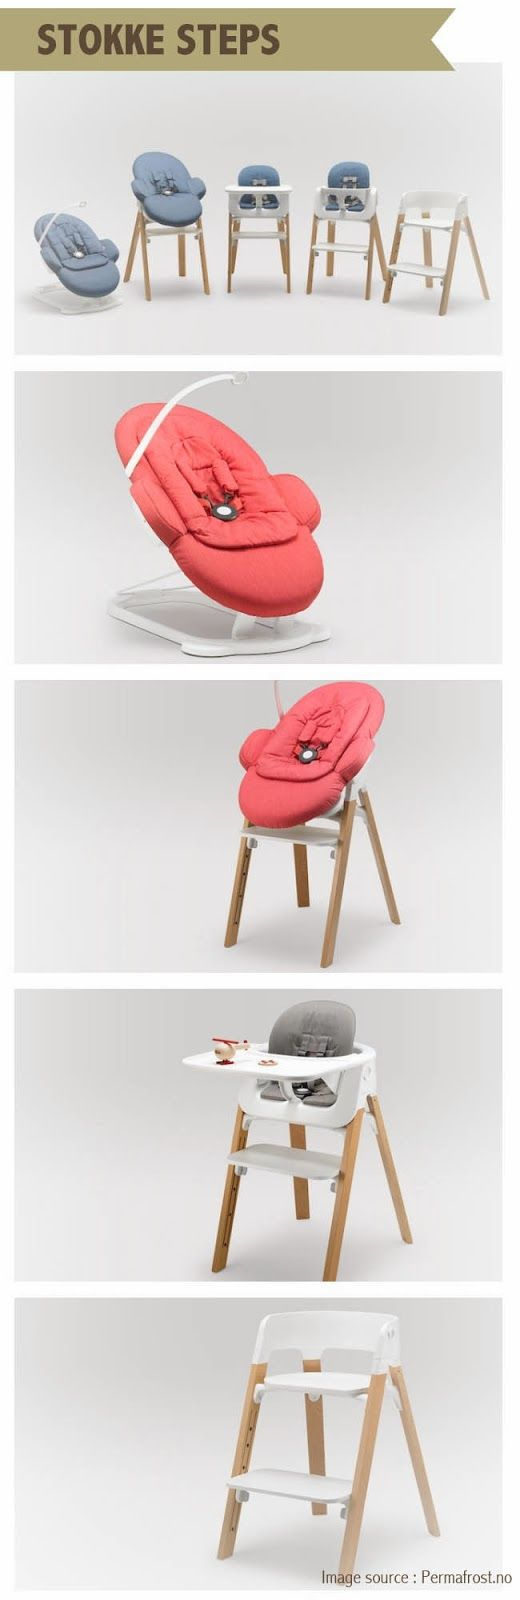 Stokke Tripp Trapp Newborn Set | Stokke high chair, High chairs and ...